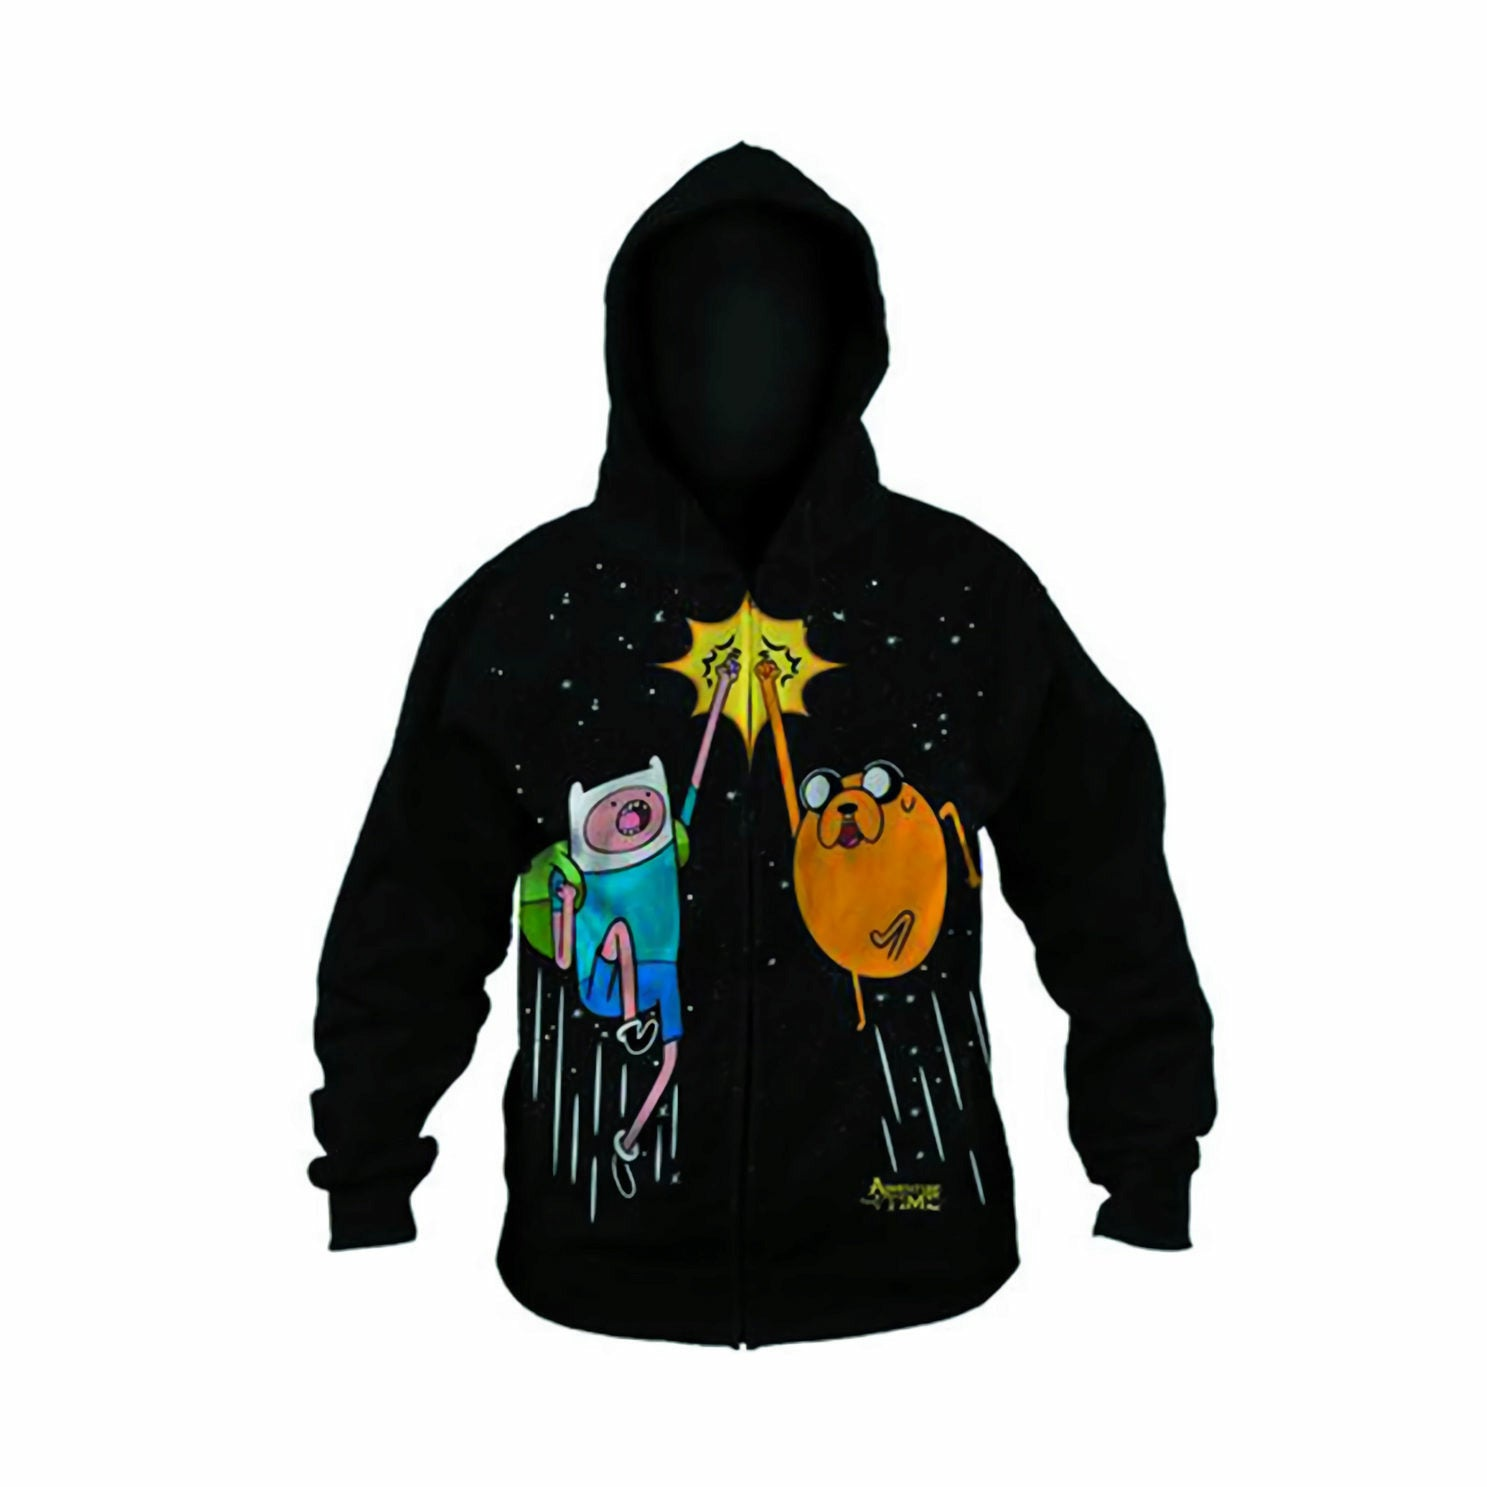 Adventure Time Space Fist Bump Black Zip up Hoodie Sweatshirt | S